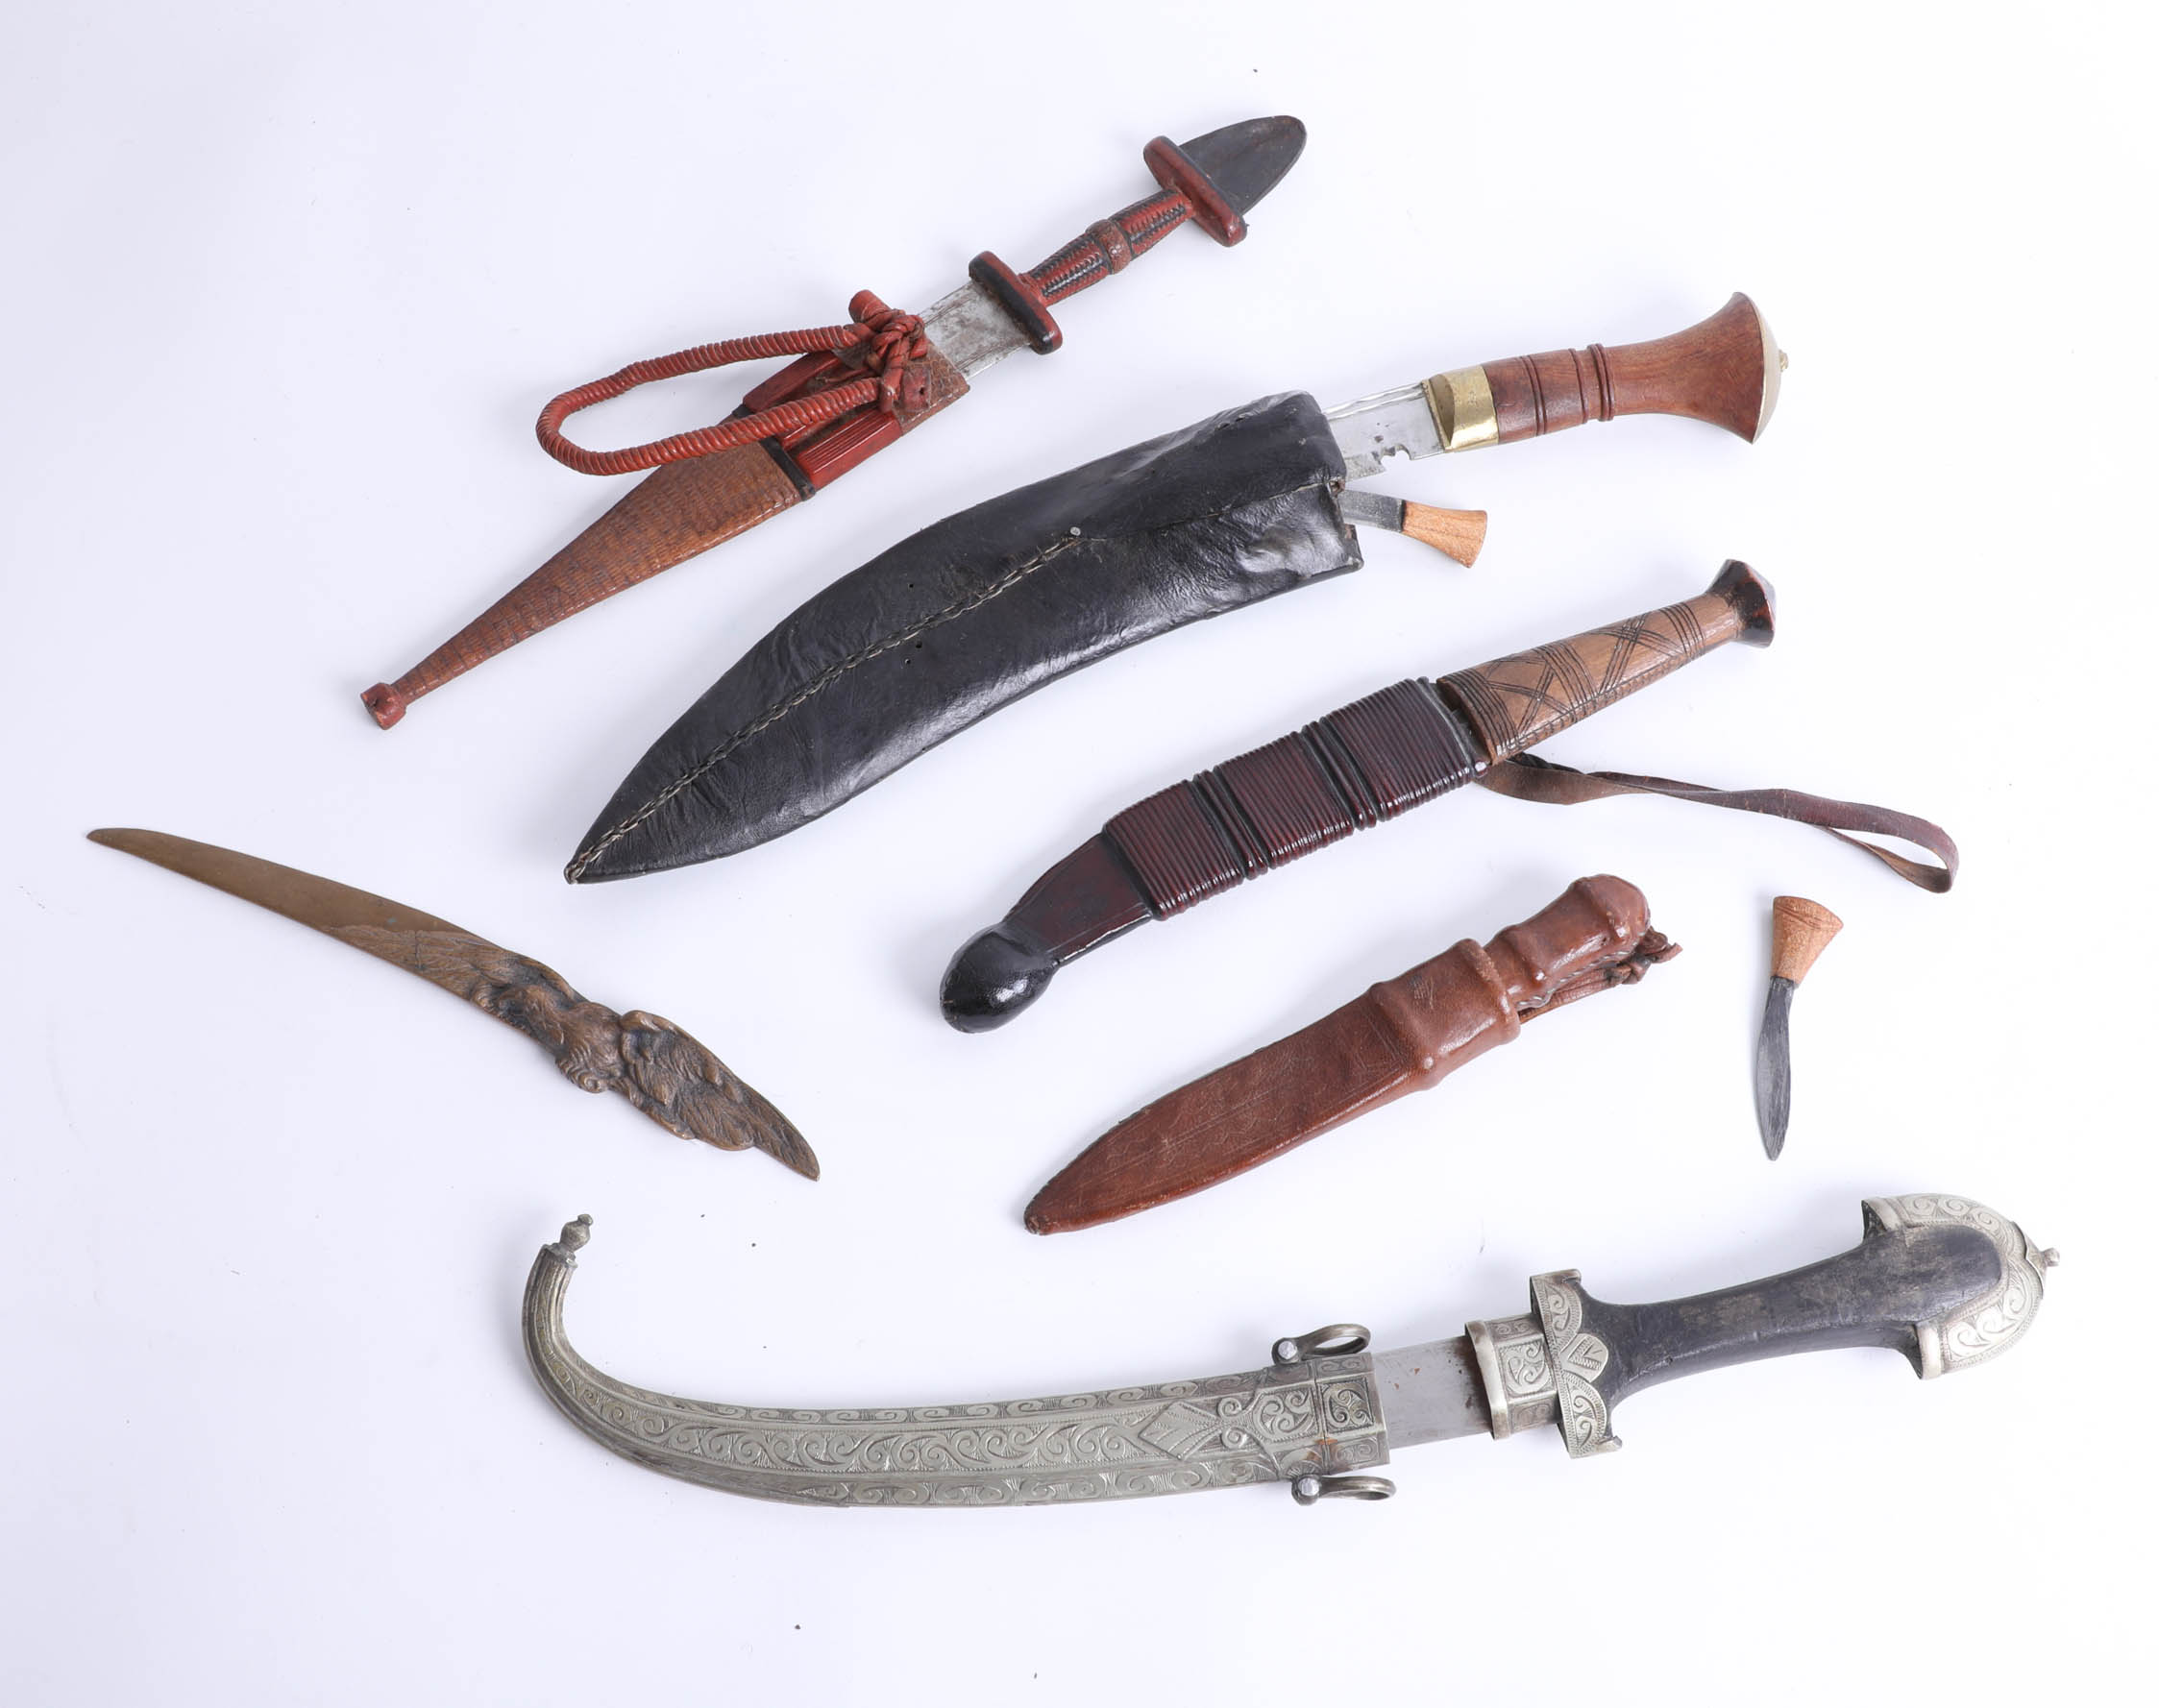 Lot 036 - Five various knives including a kukri, a middle eastern short knife and daggers. Part of the Late